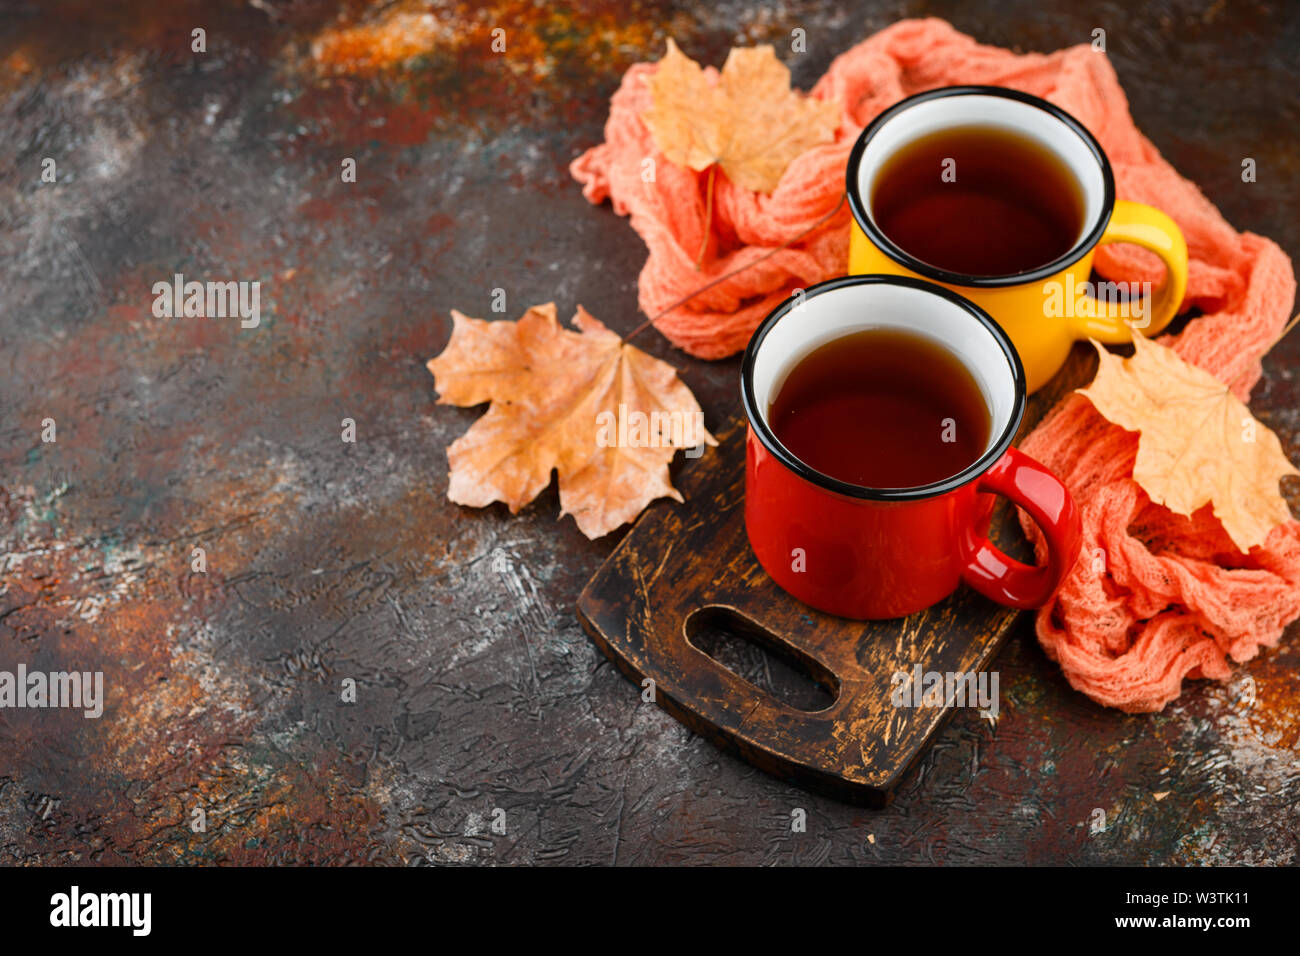 Two colored enamel tea cups, autumn maple leaves on rusty brown background - Stock Image